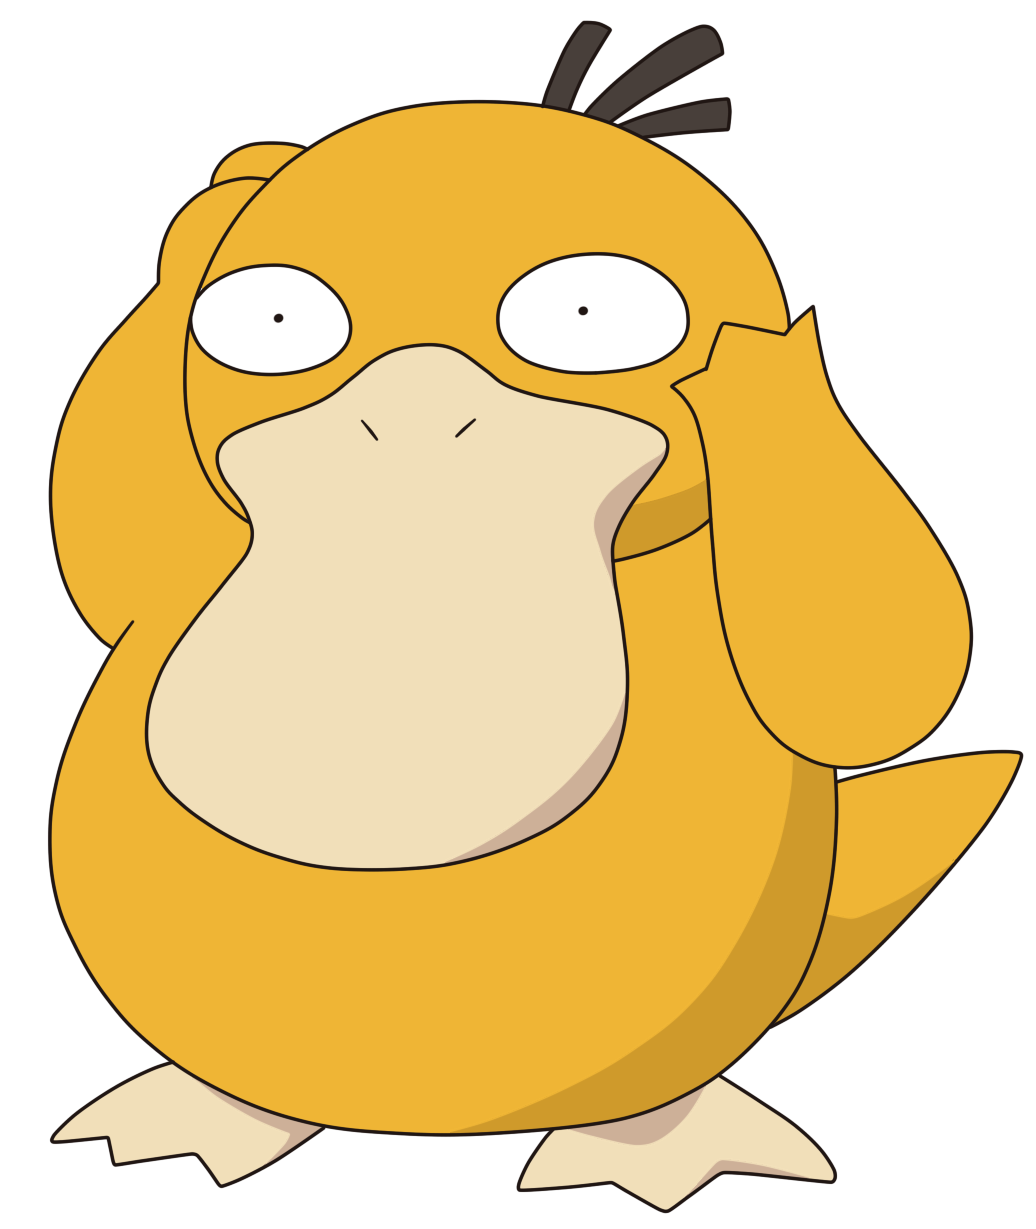 054-Psyduck by Tzblacktd on DeviantArt